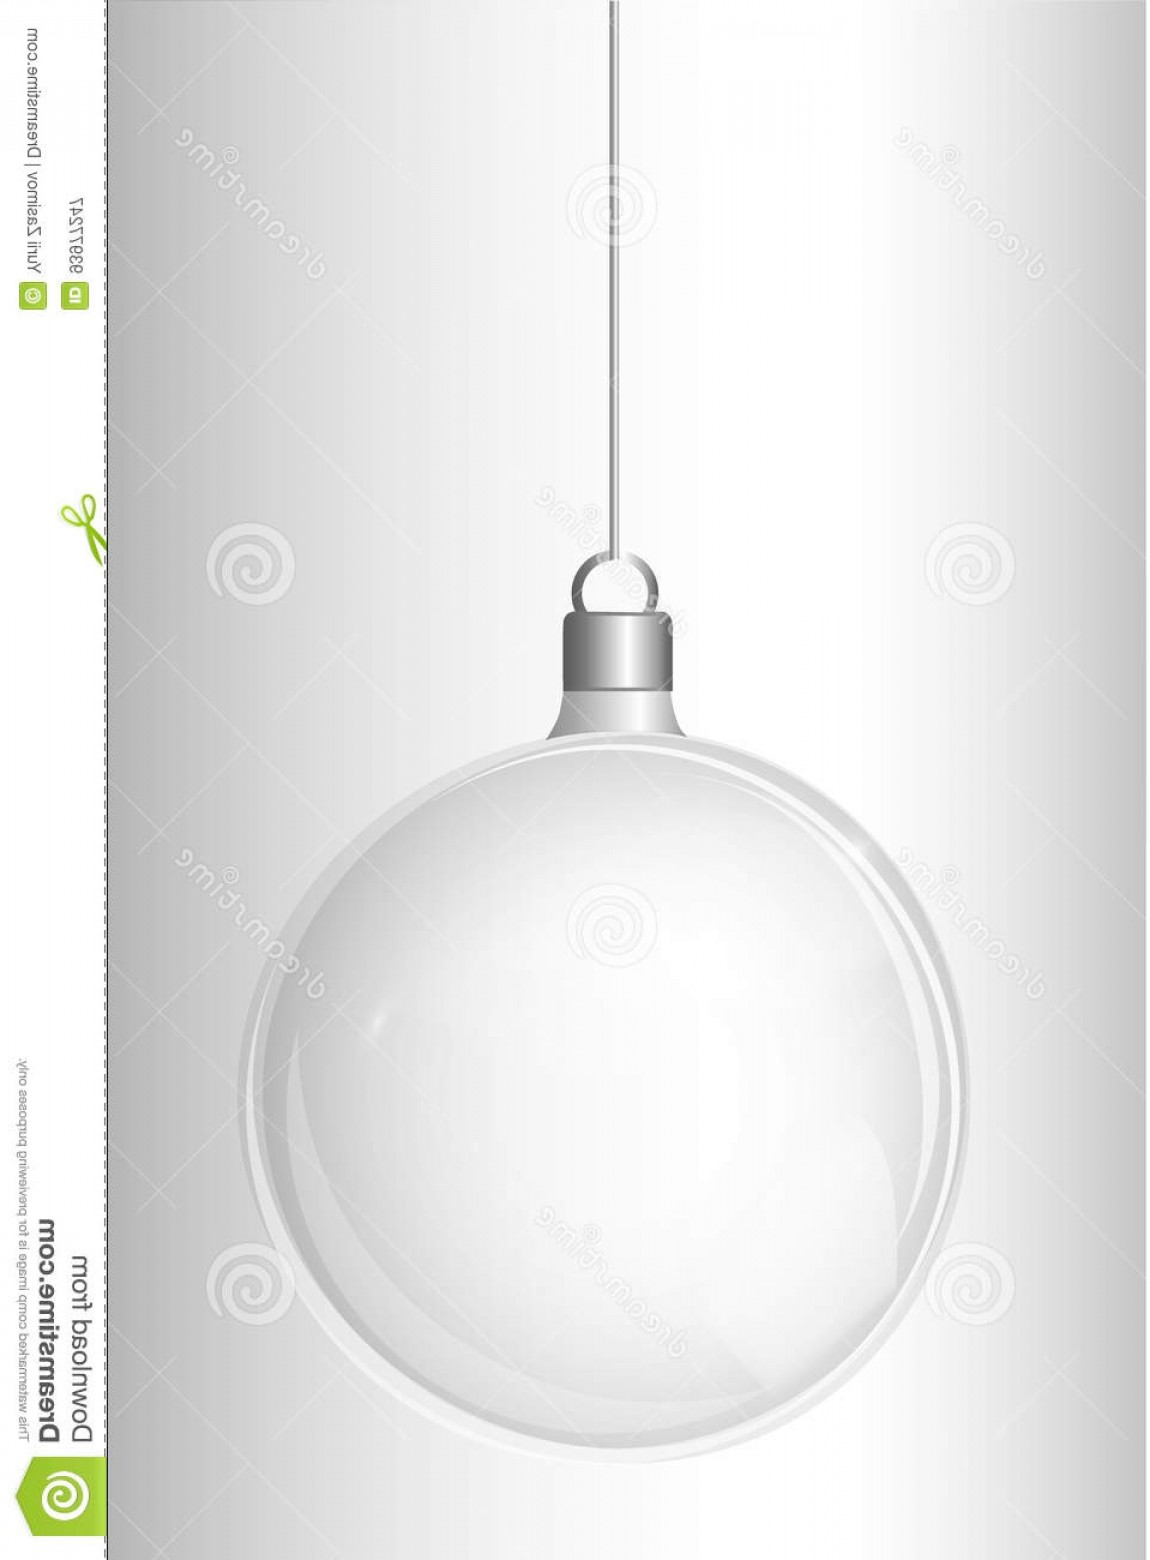 3 Glass Christmas Bulb Vector: Stock Illustration Vector Christmas Fir Tree Realistic Transparent Silver Christmas Ball Light Abstract Background Glass Elements Image